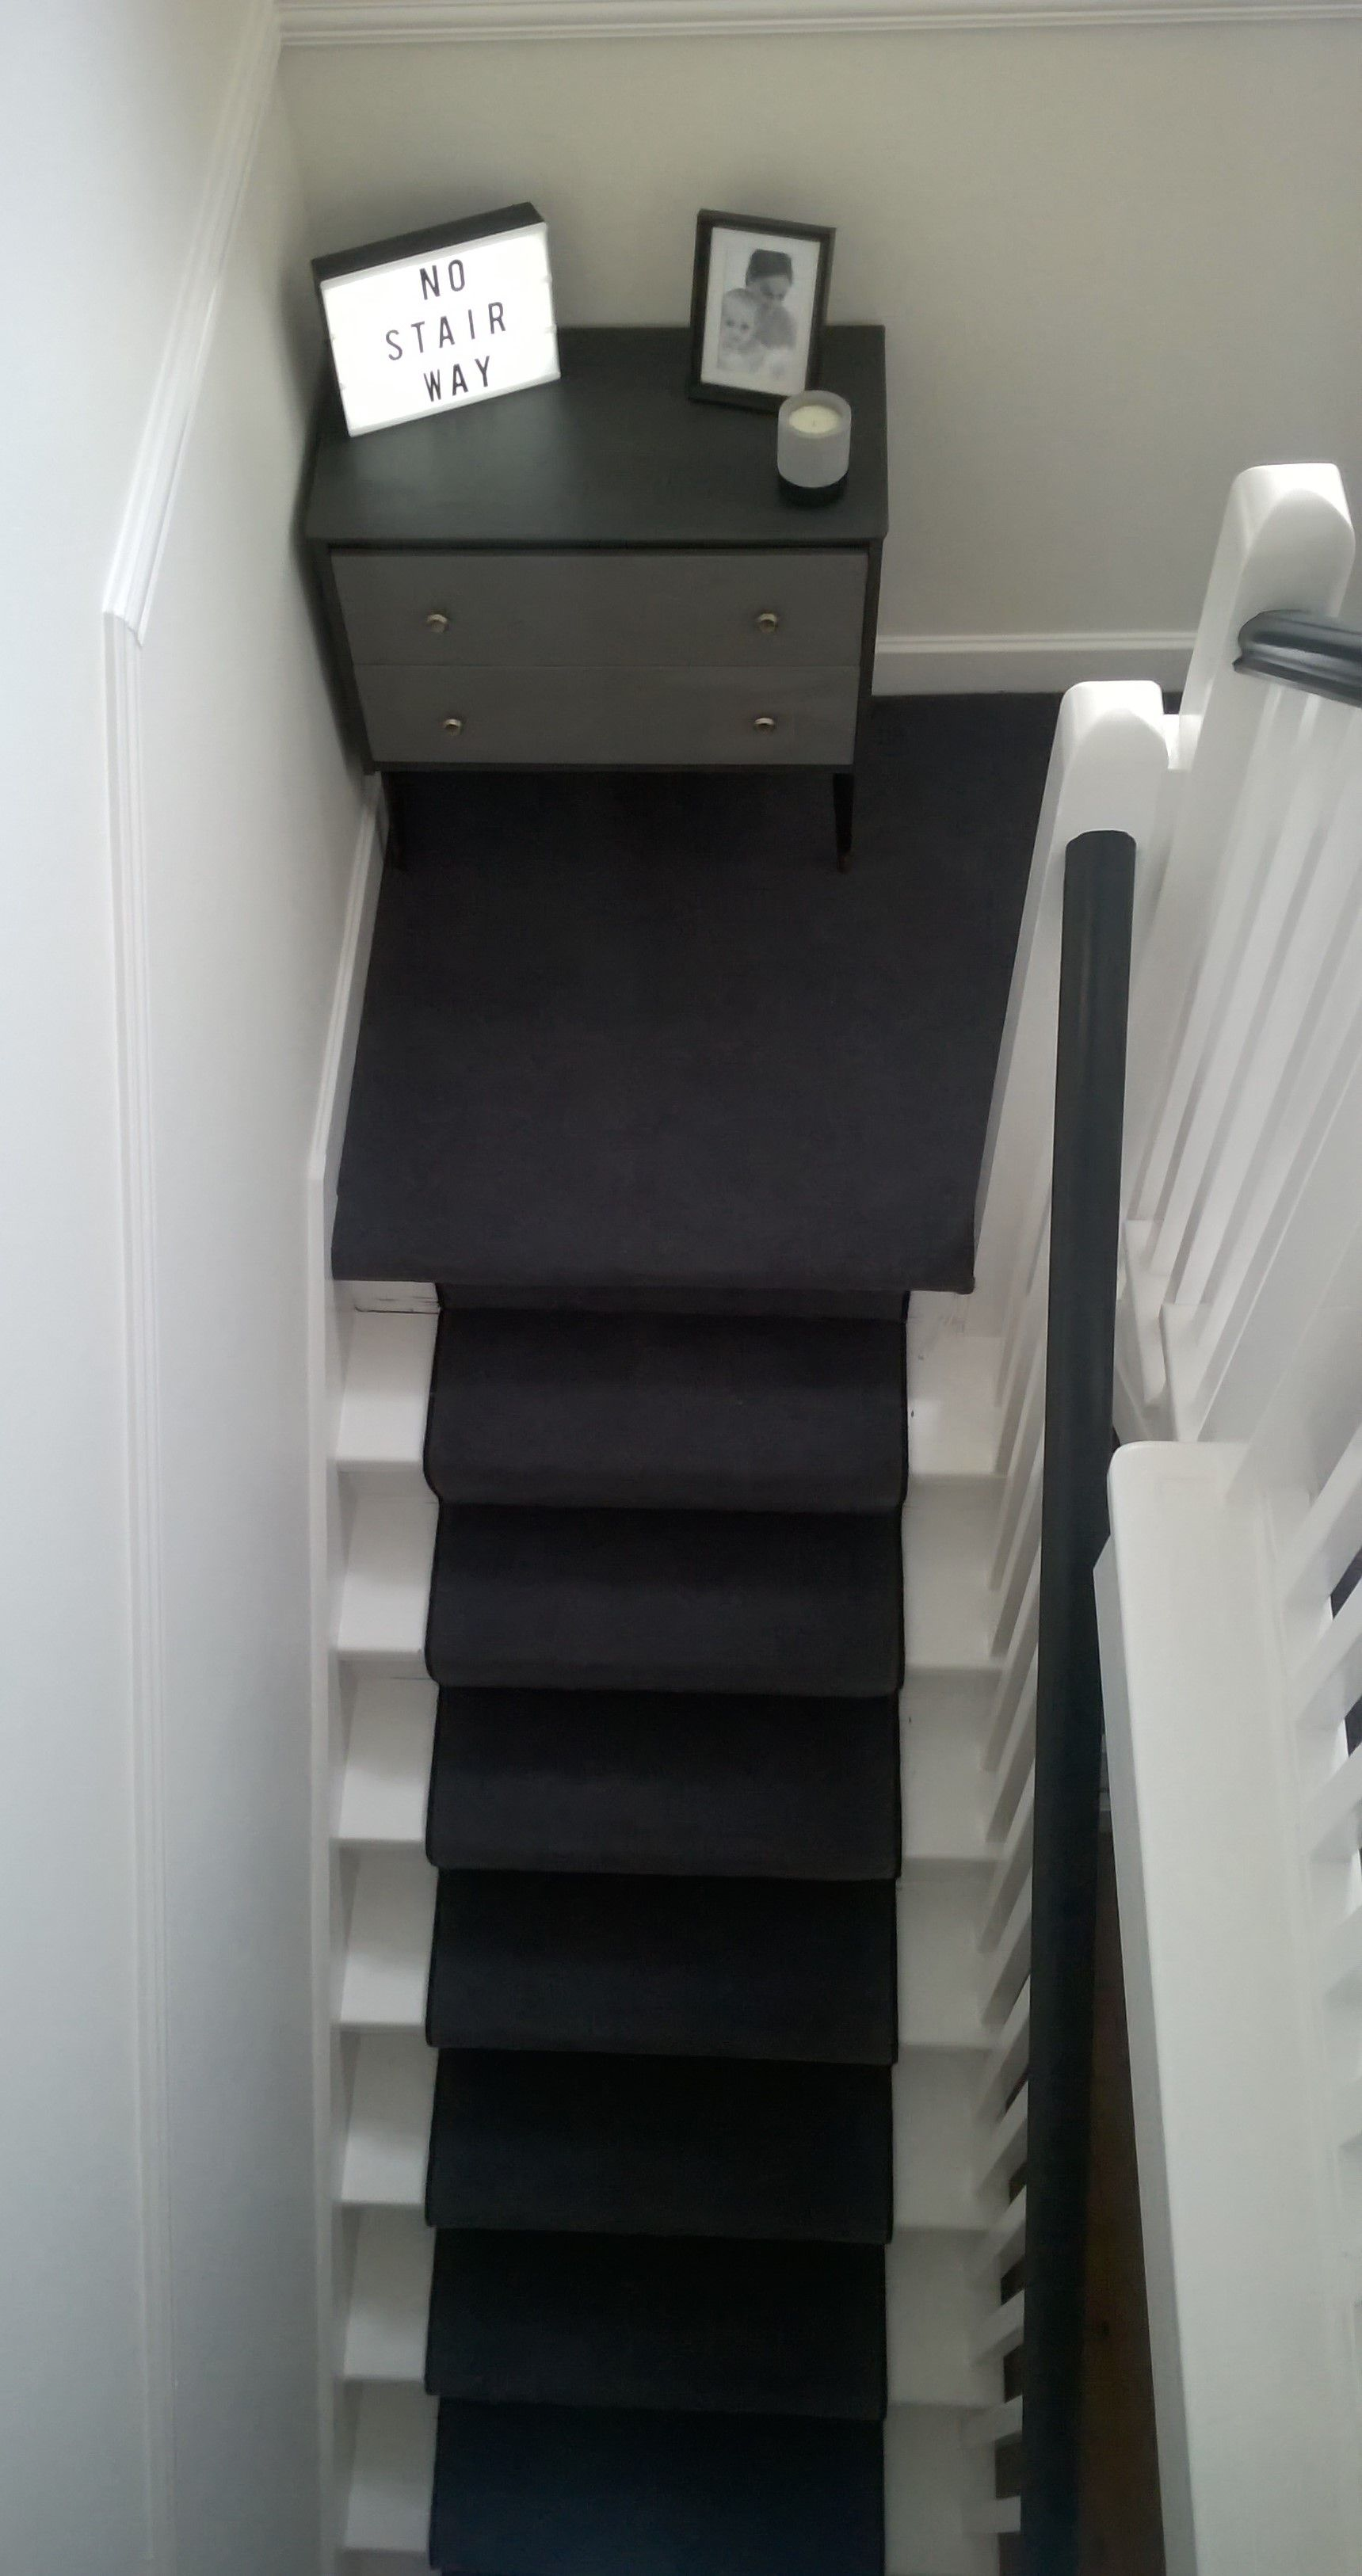 Carpet by Carrick Carpets in Ayr, many thanks to them for installation and great service.